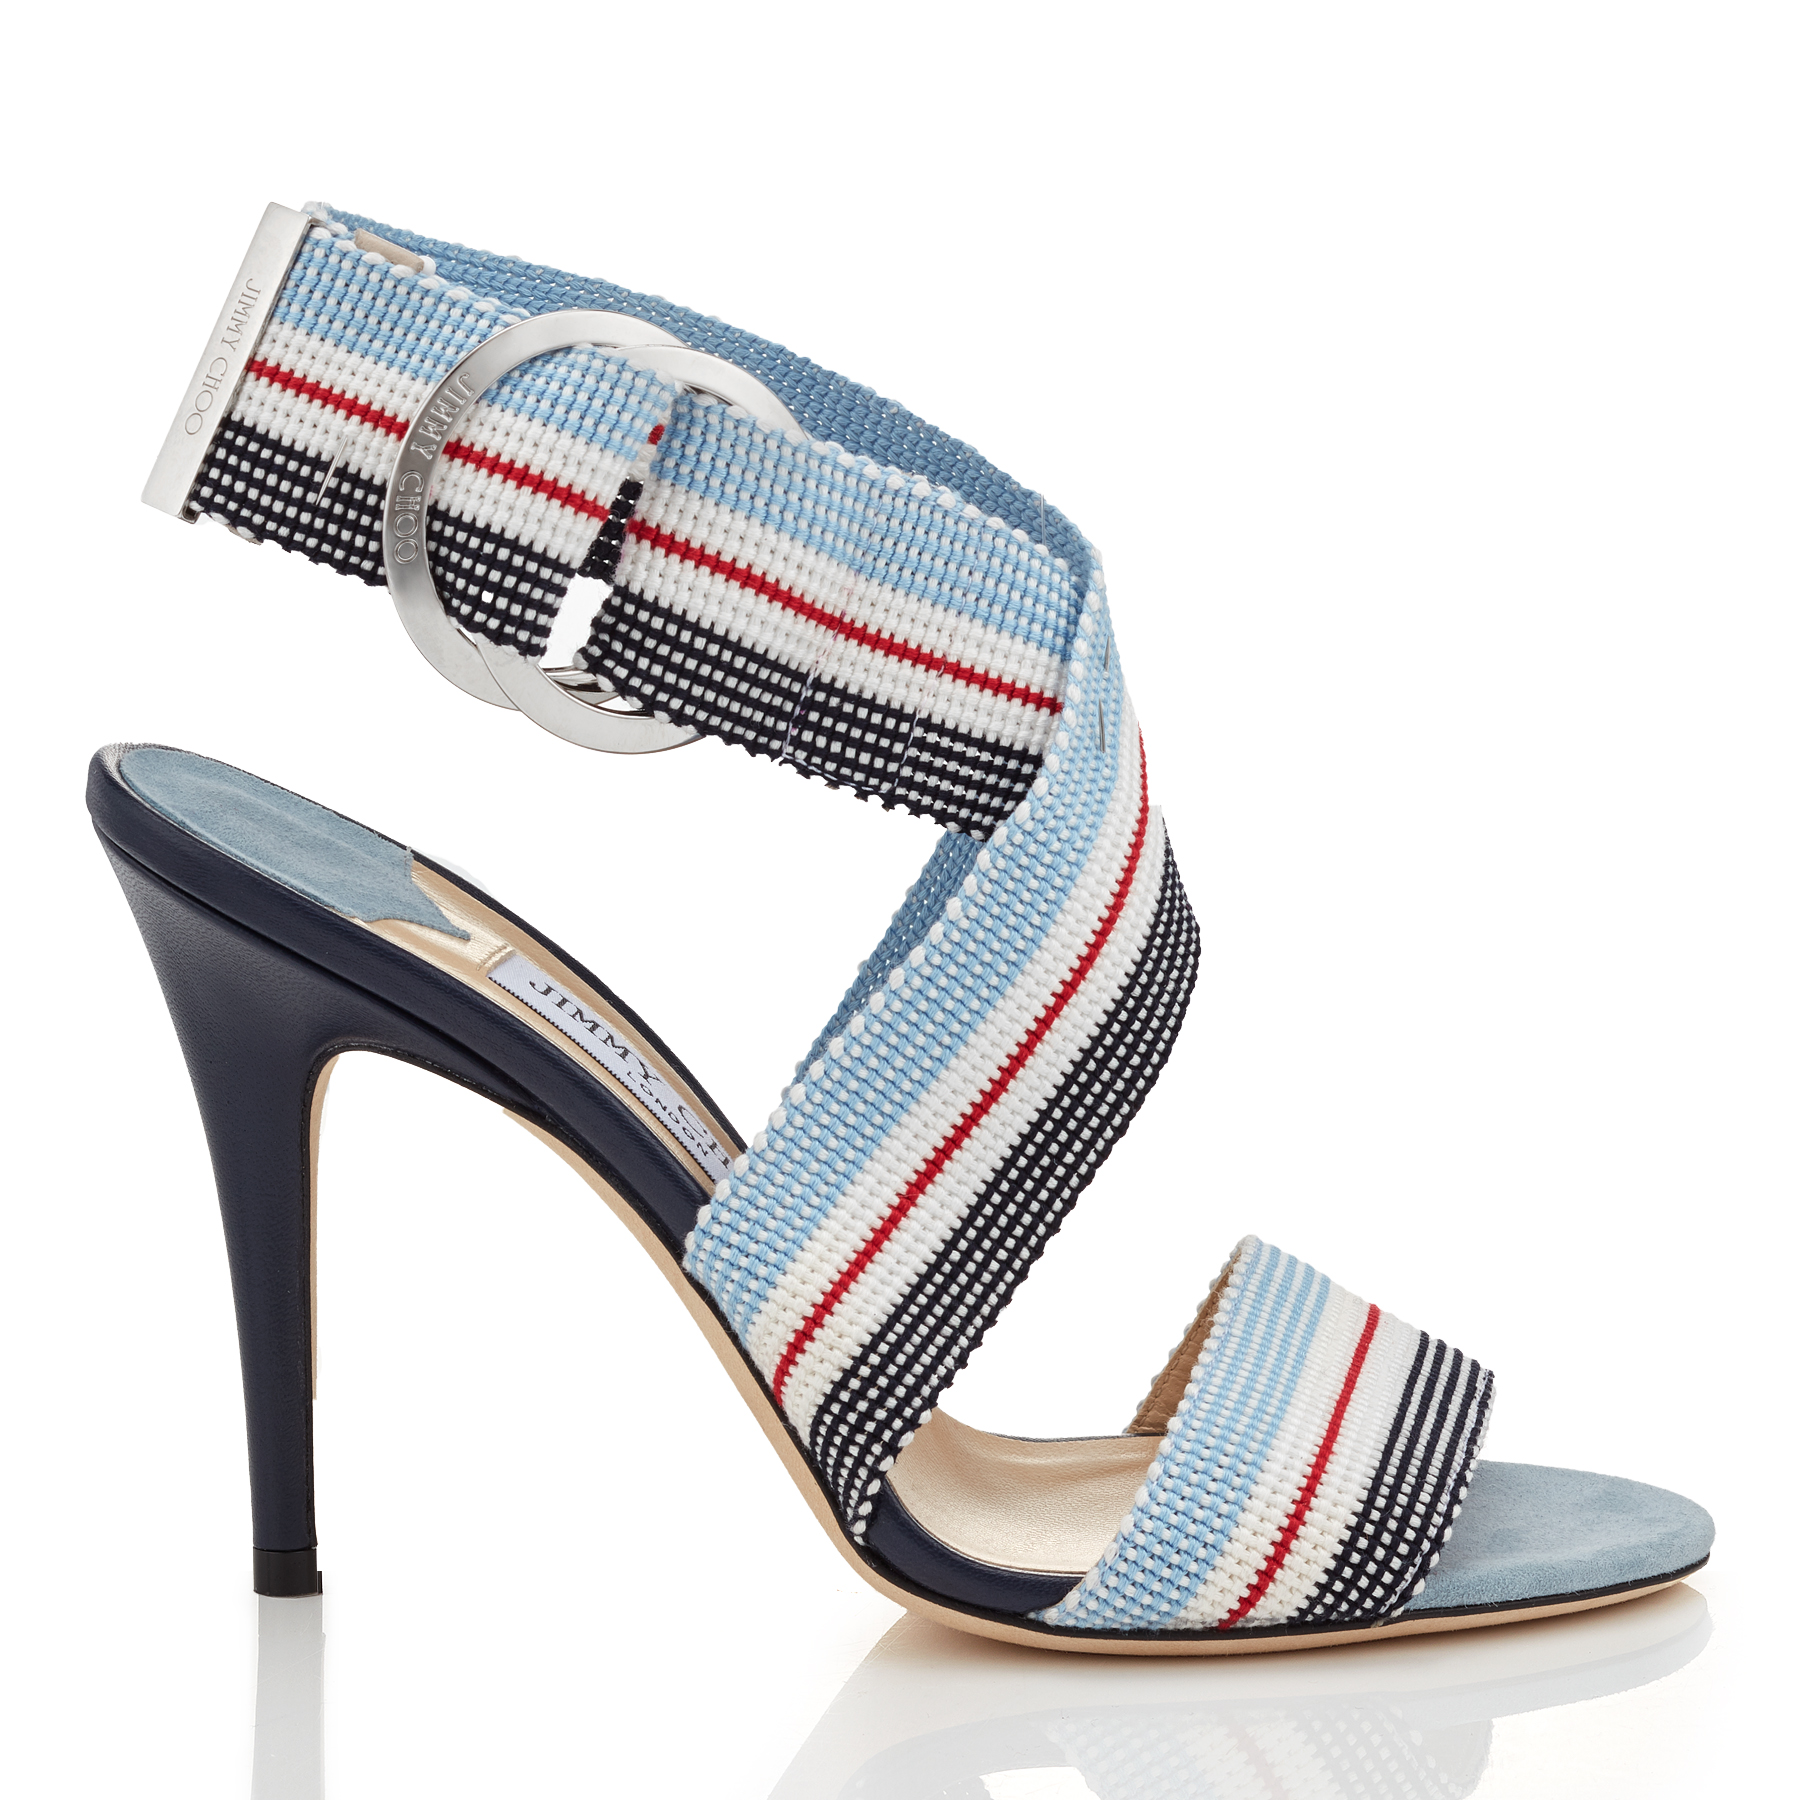 BAILEY 100 Aqua Mix Tape and Nappa Leather Sandals by Jimmy Choo